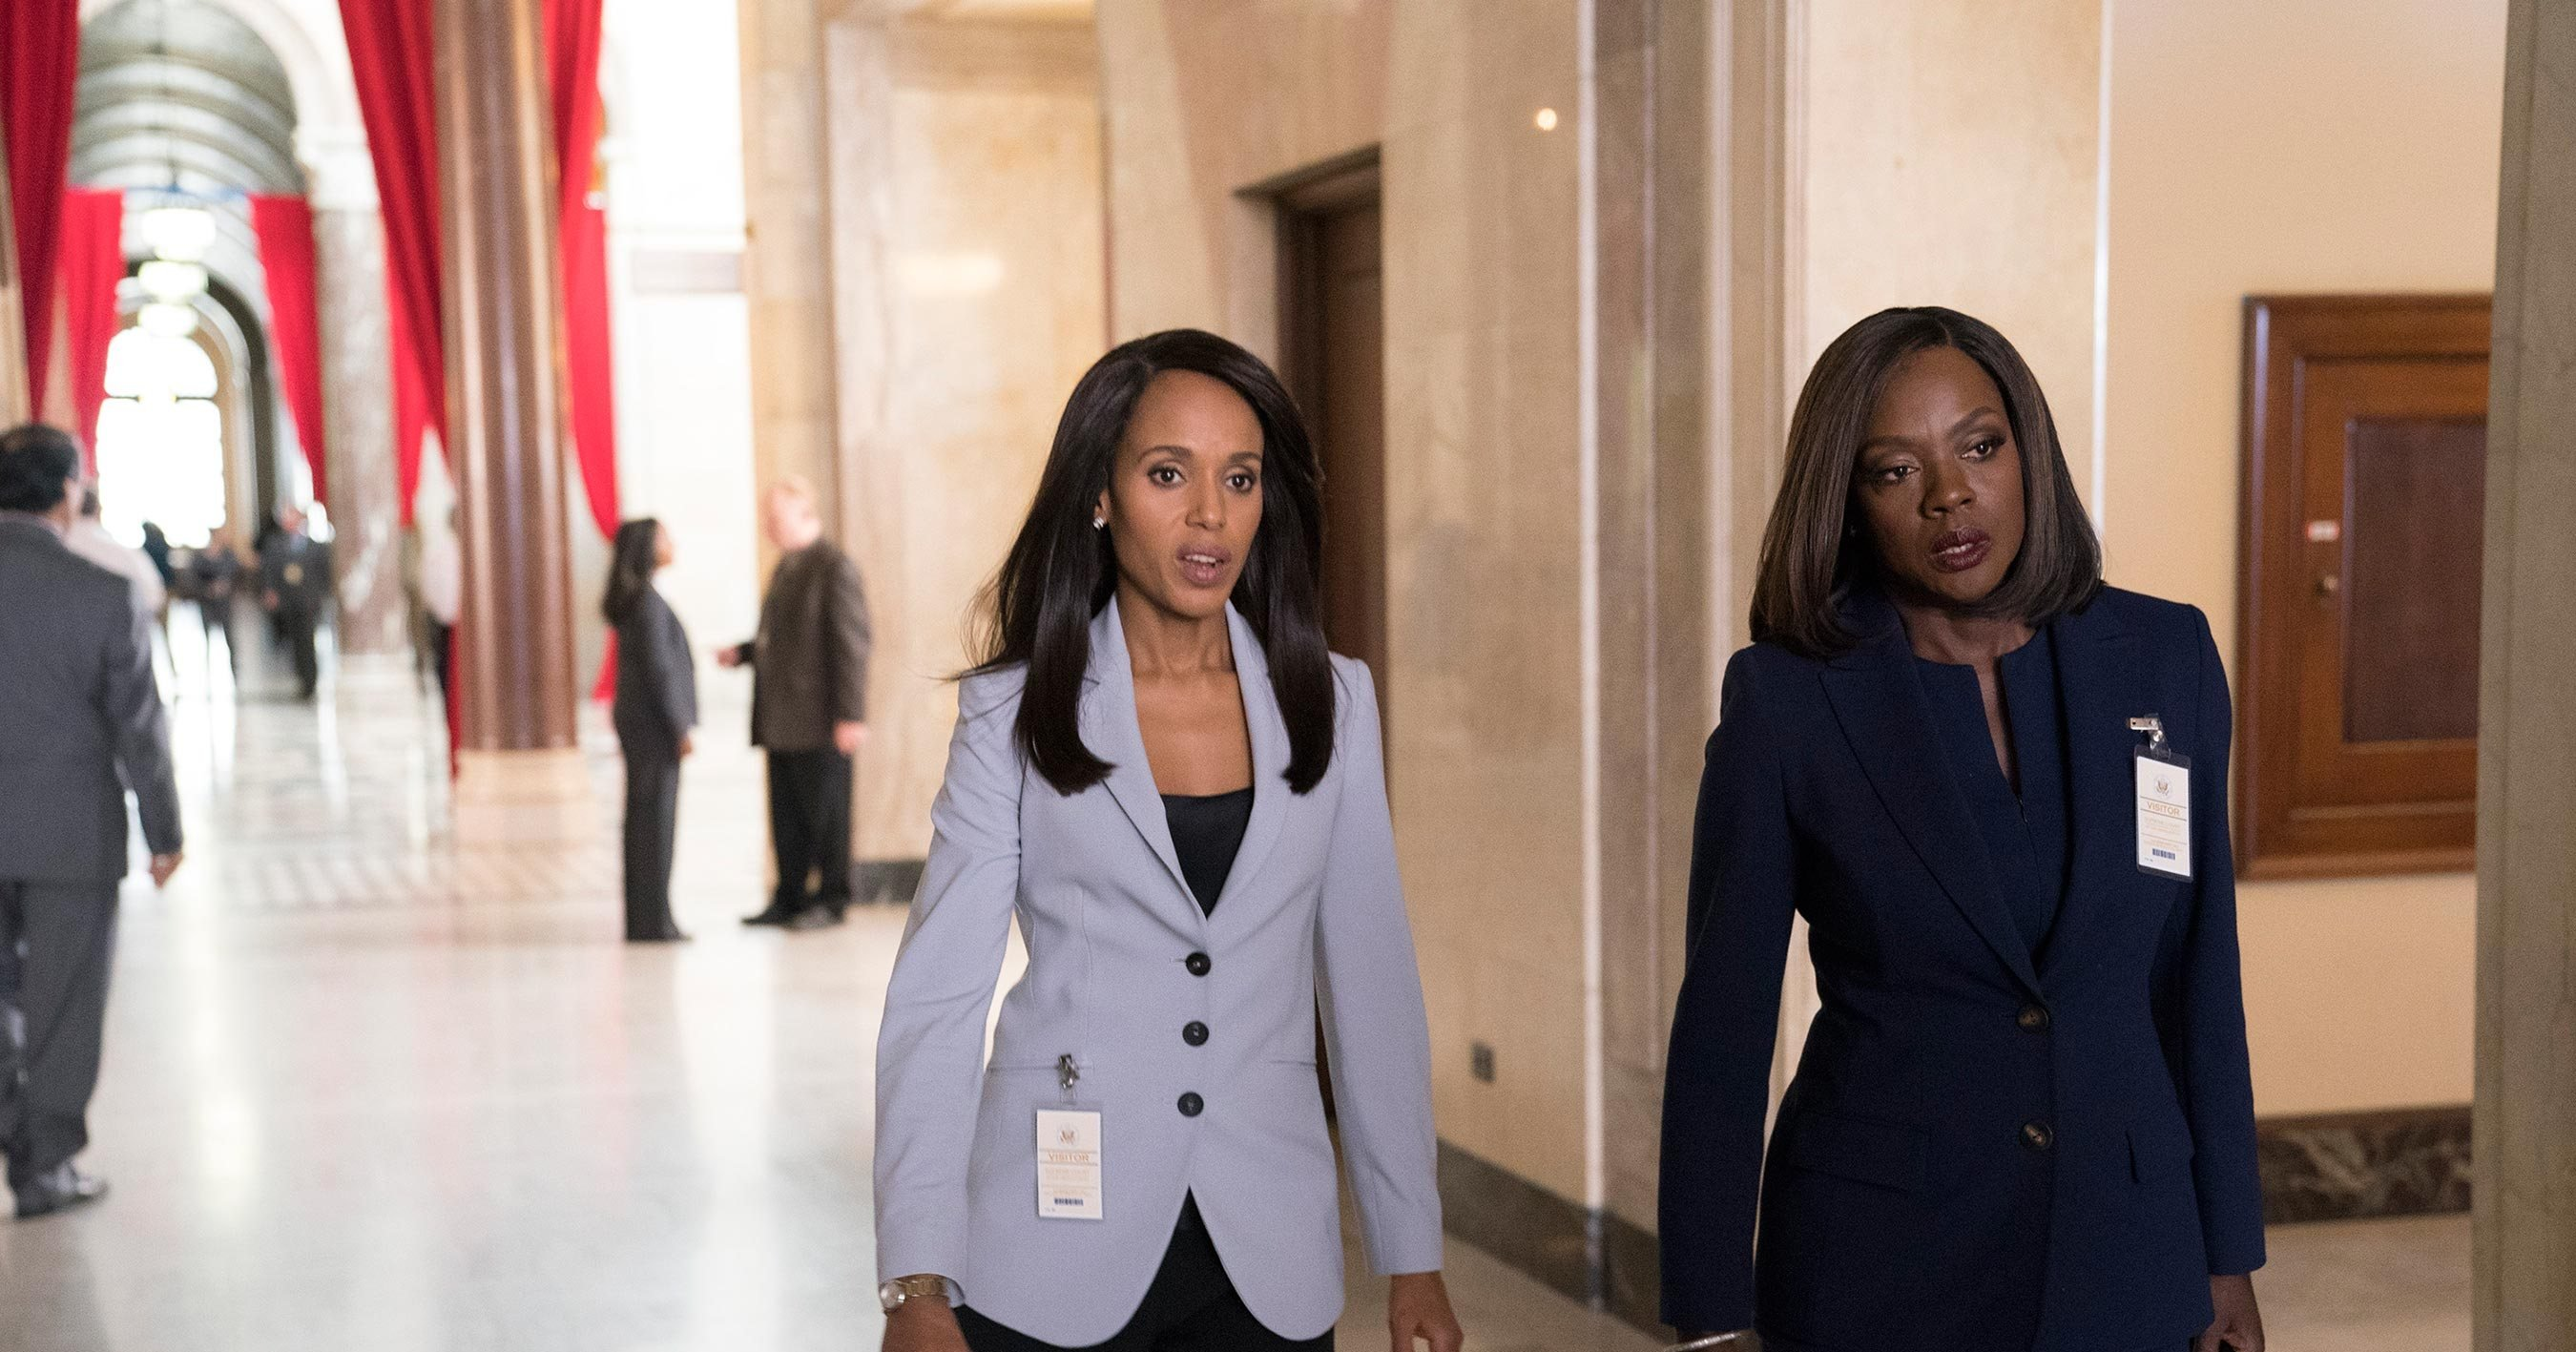 'Scandal' recap: When Olivia Pope and Annalise Keating enter a room, pay attention